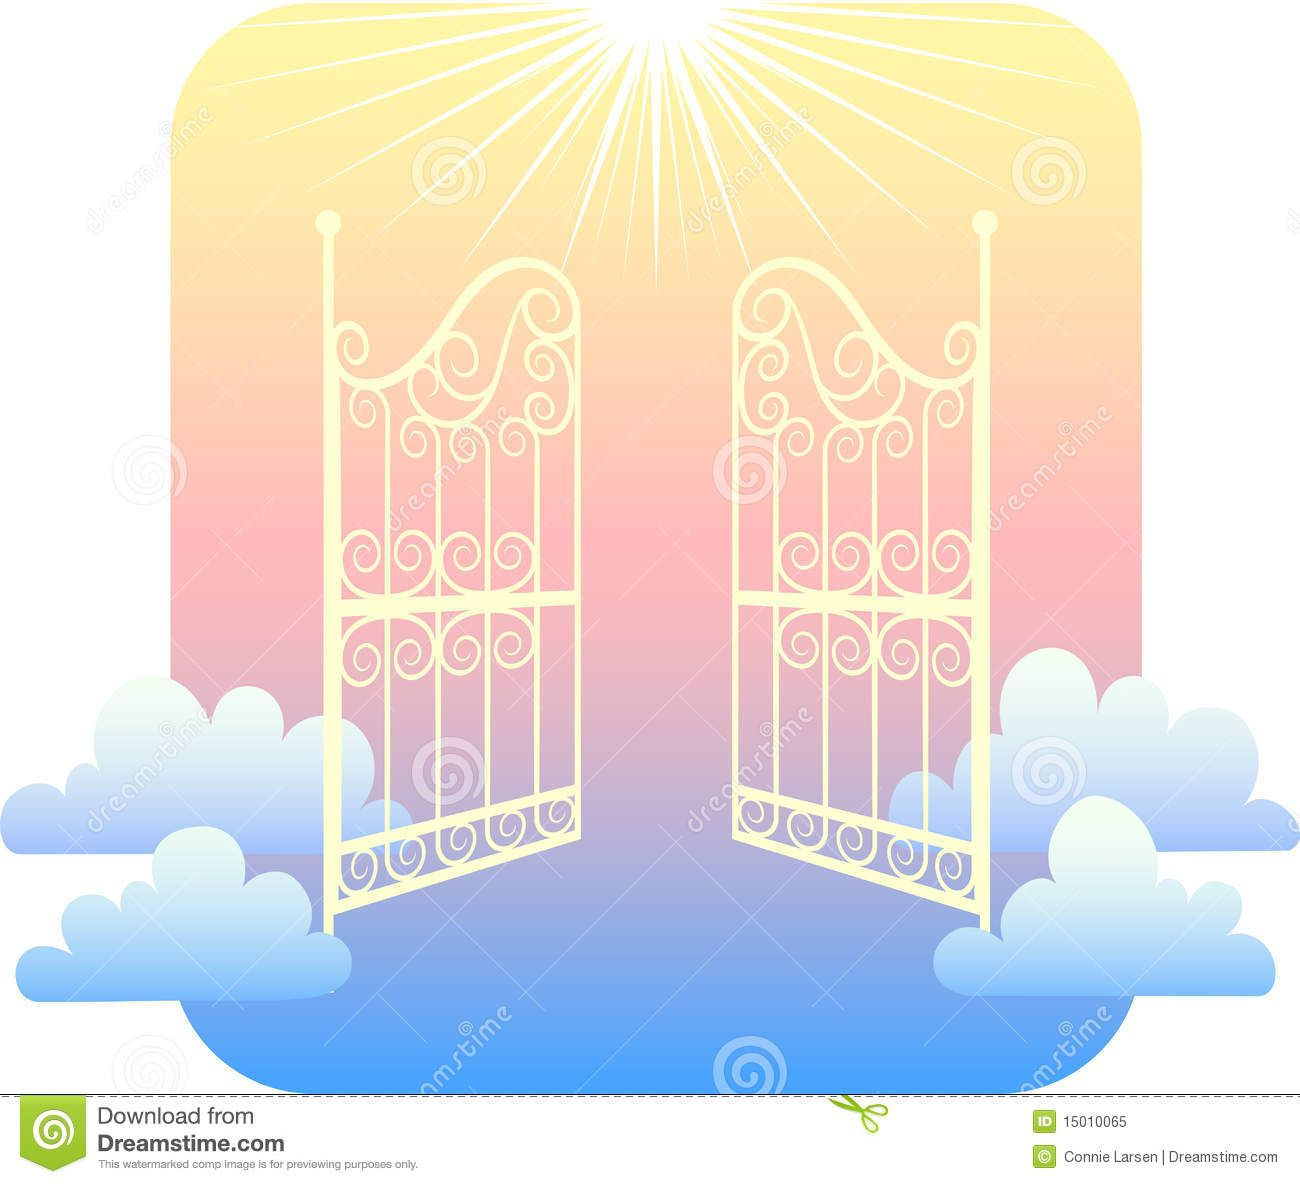 graphic royalty free stock Gates of images pictures. Heaven clipart.